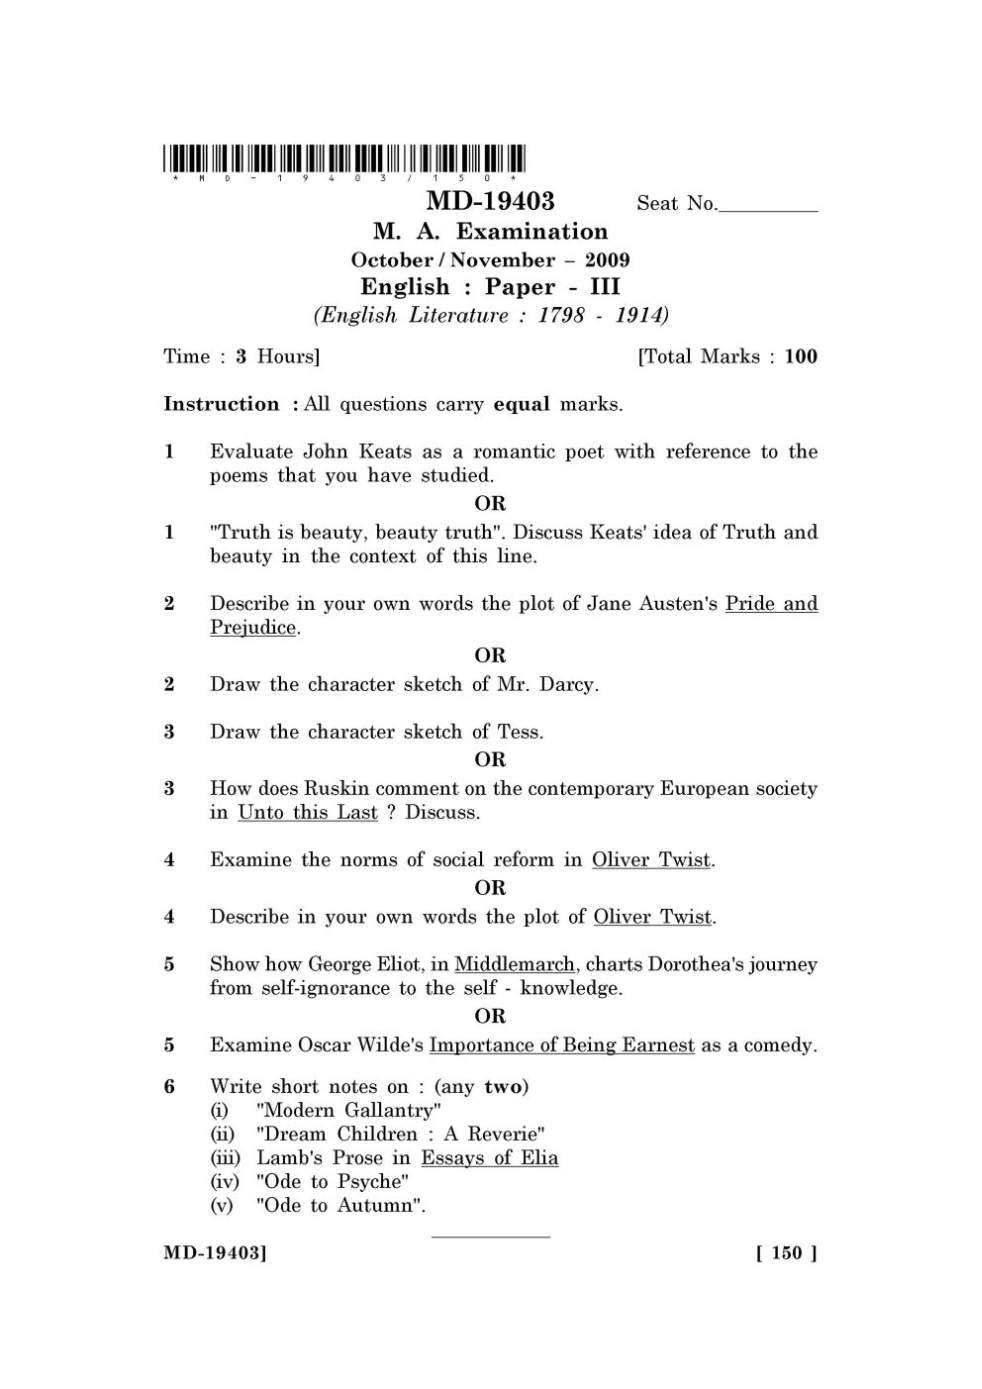 m a english literature question papers student forum ma english literature exams paper 3